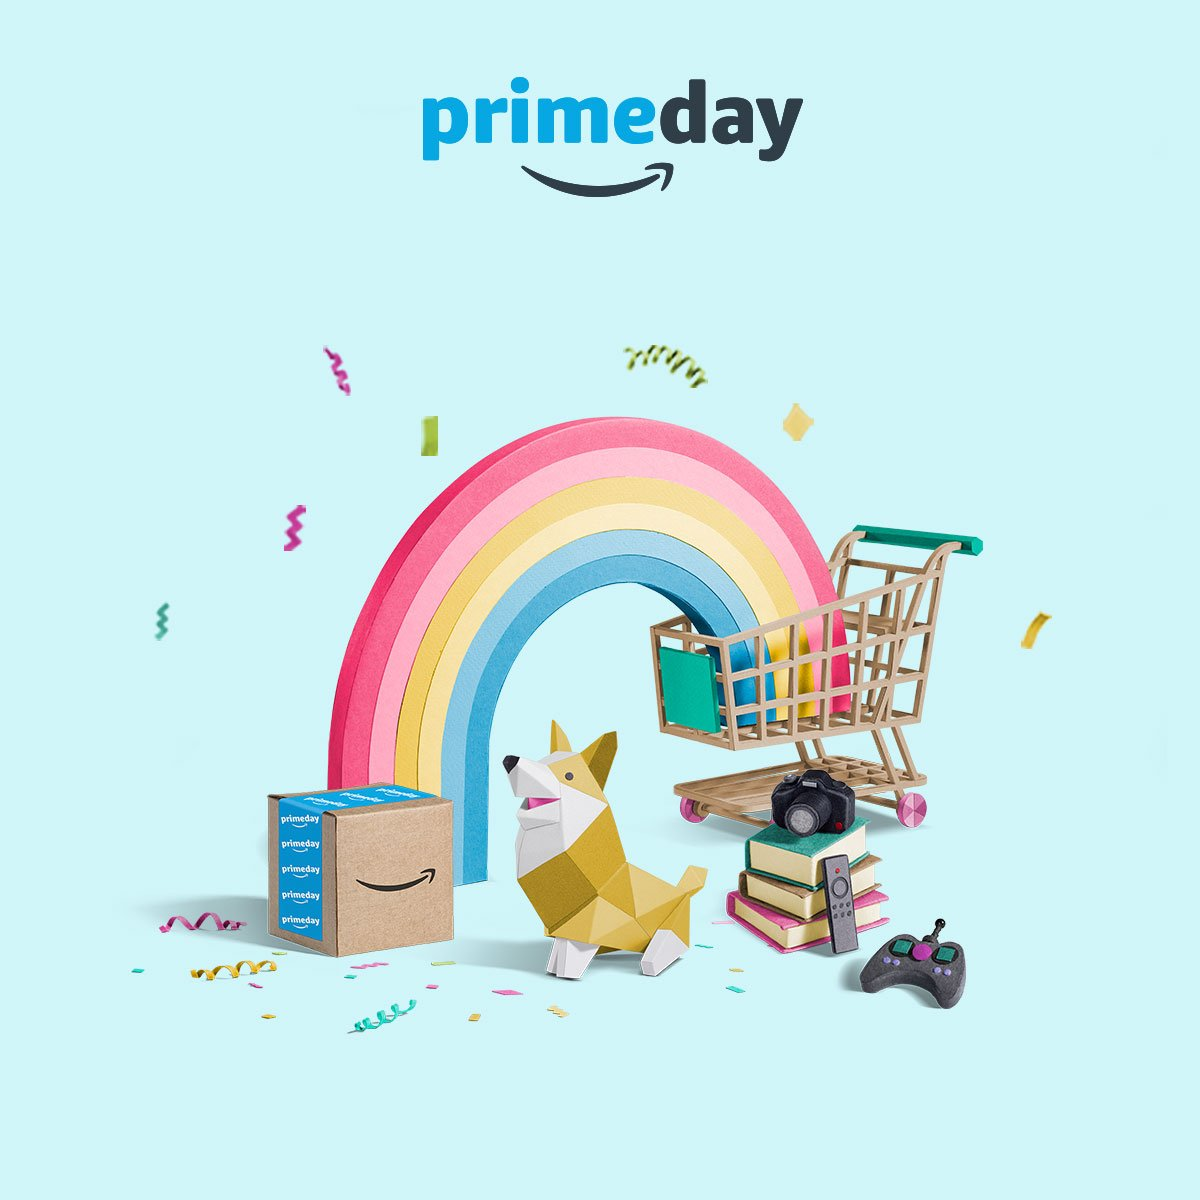 55b5fbc571a0 Get ready for Prime Day